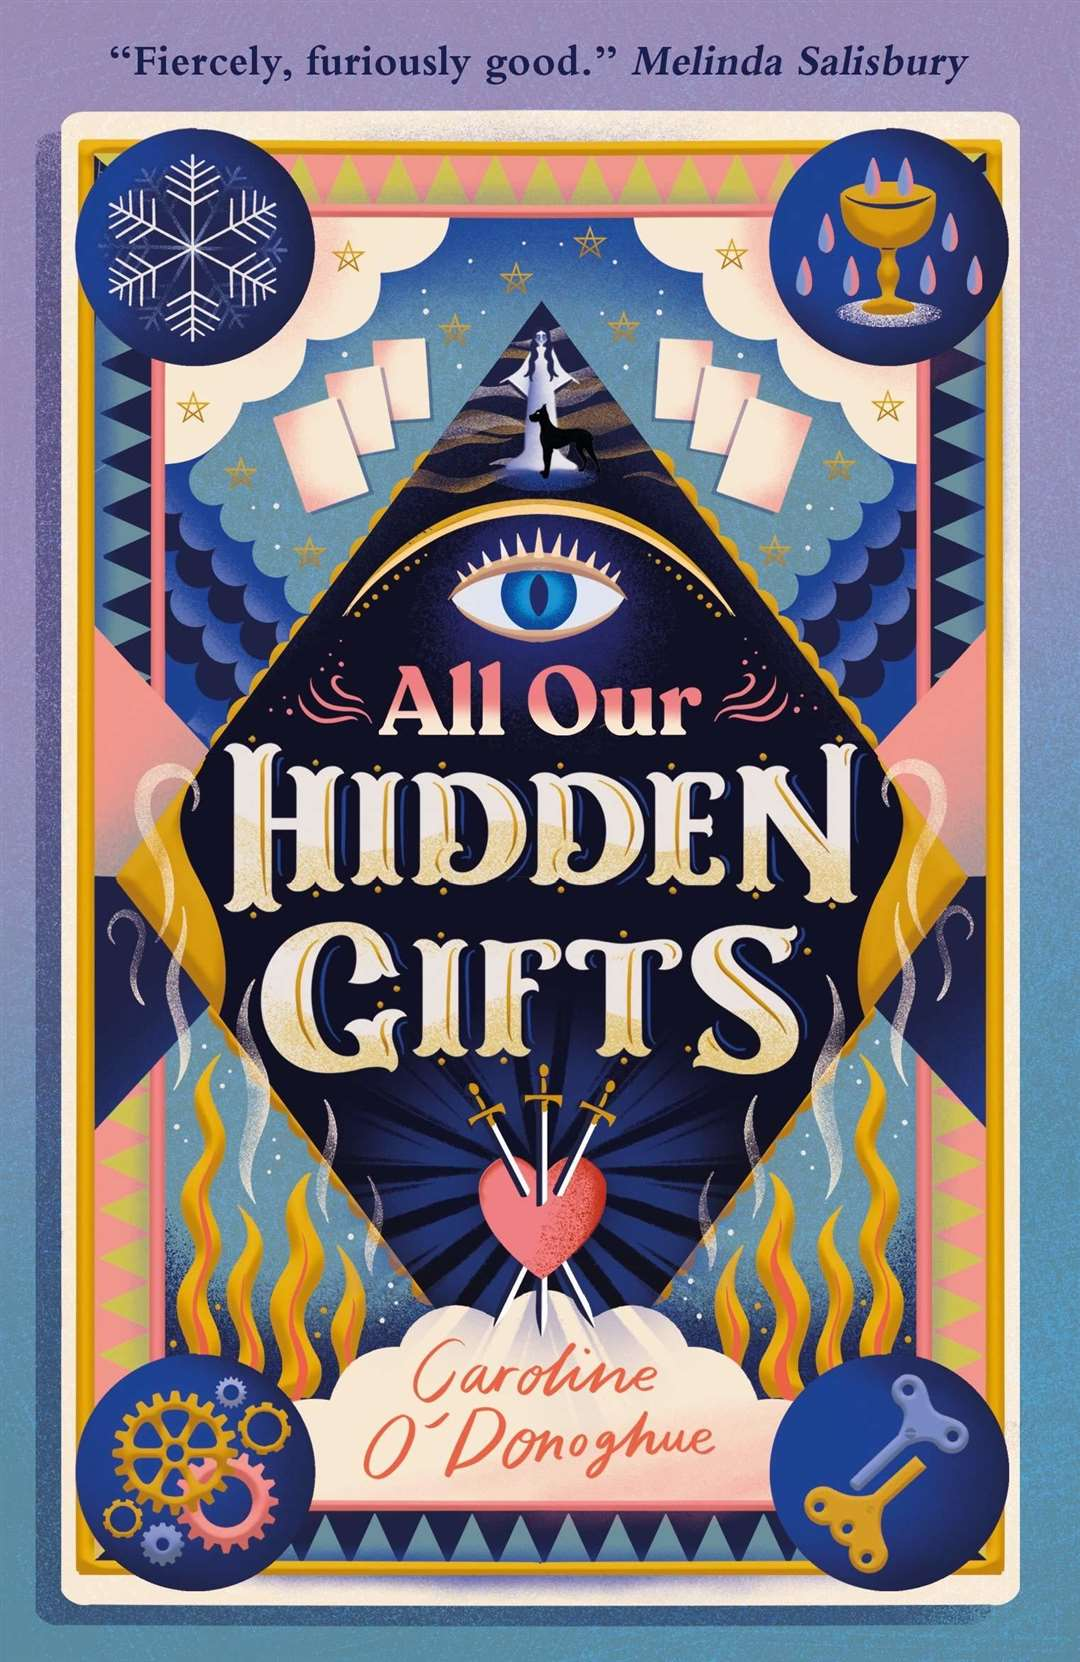 All Our Hidden Gifts by Caroline O'Donoghue (45057037)